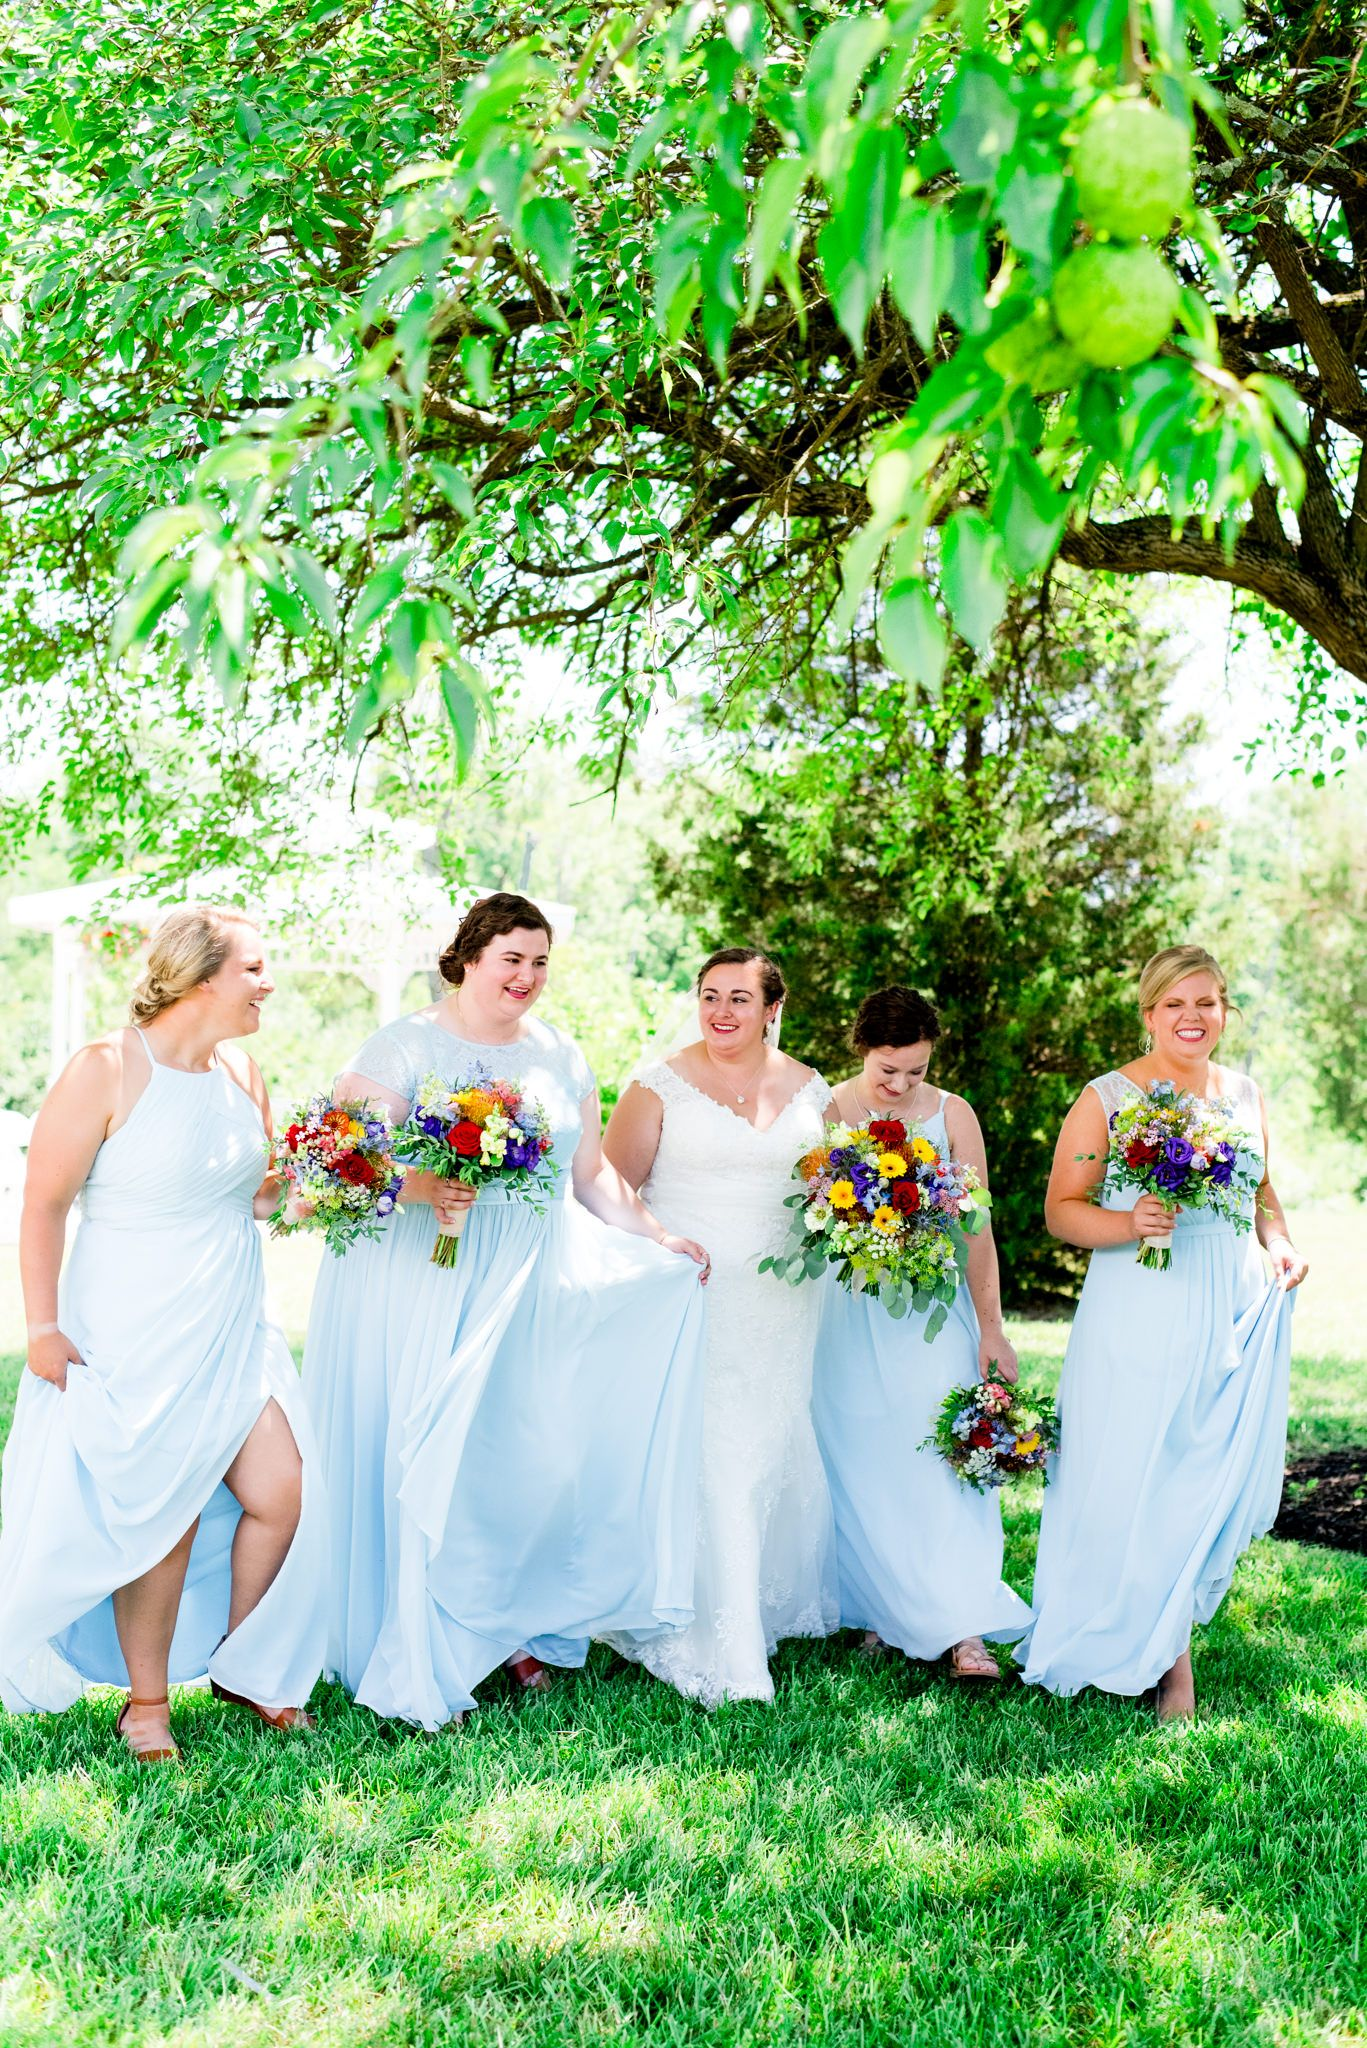 bridesmaids in light blue dresses walk under trees for a colorful outdoor summer wedding in Chicago